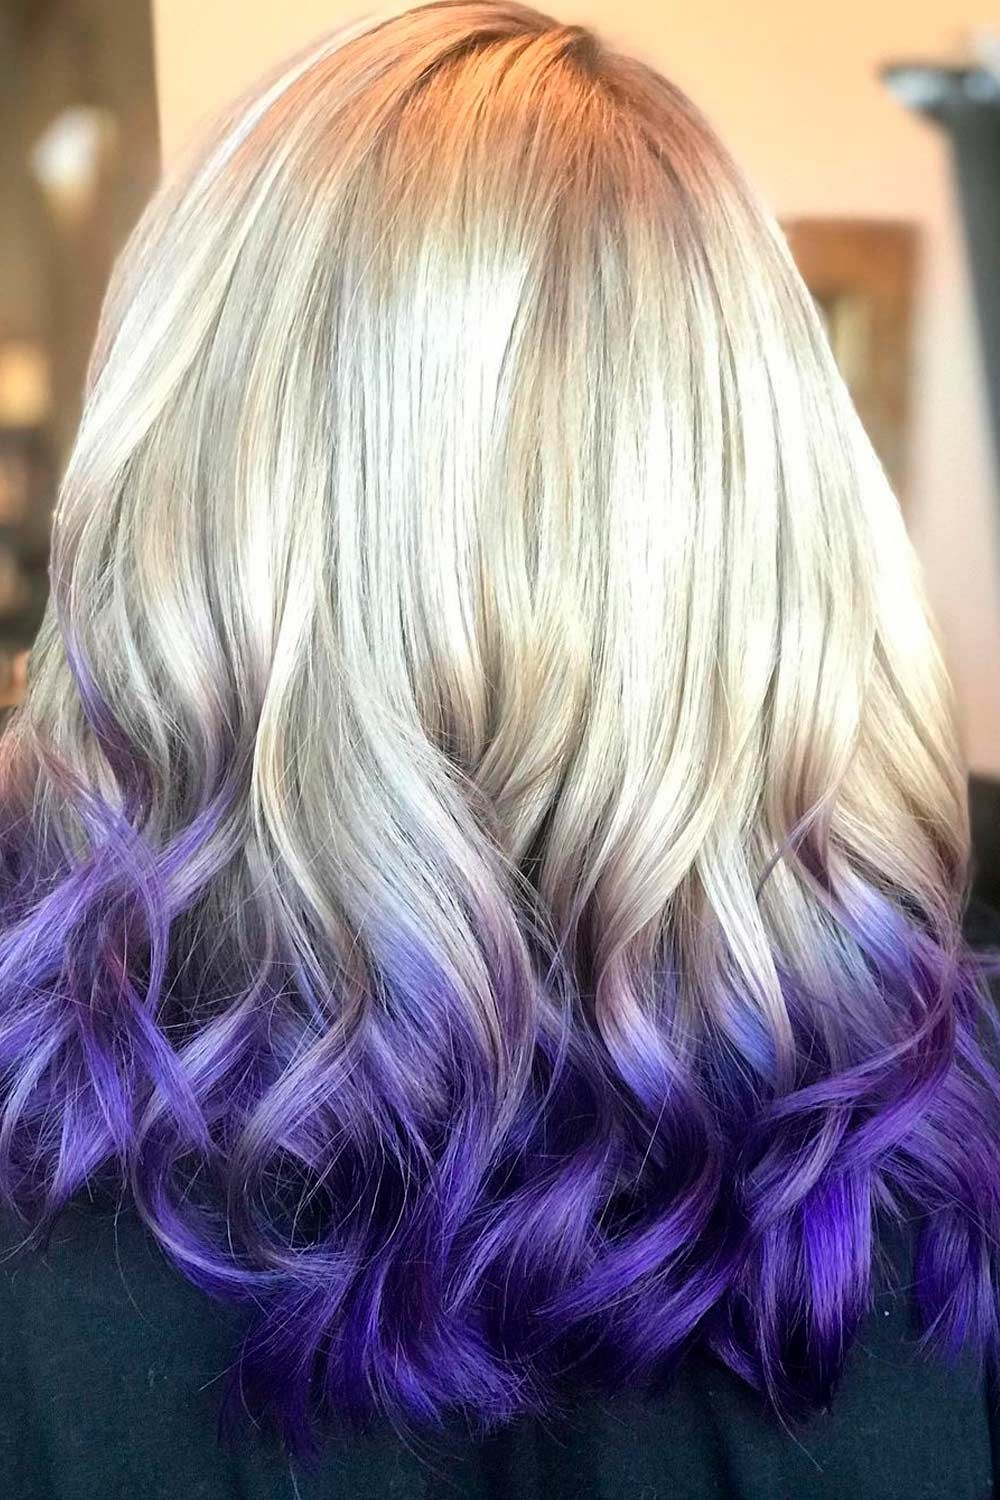 Mermaid Style With Blue And Blonde Reverse Ombre, reverse ombre blonde, reverse ombre hair light to dark